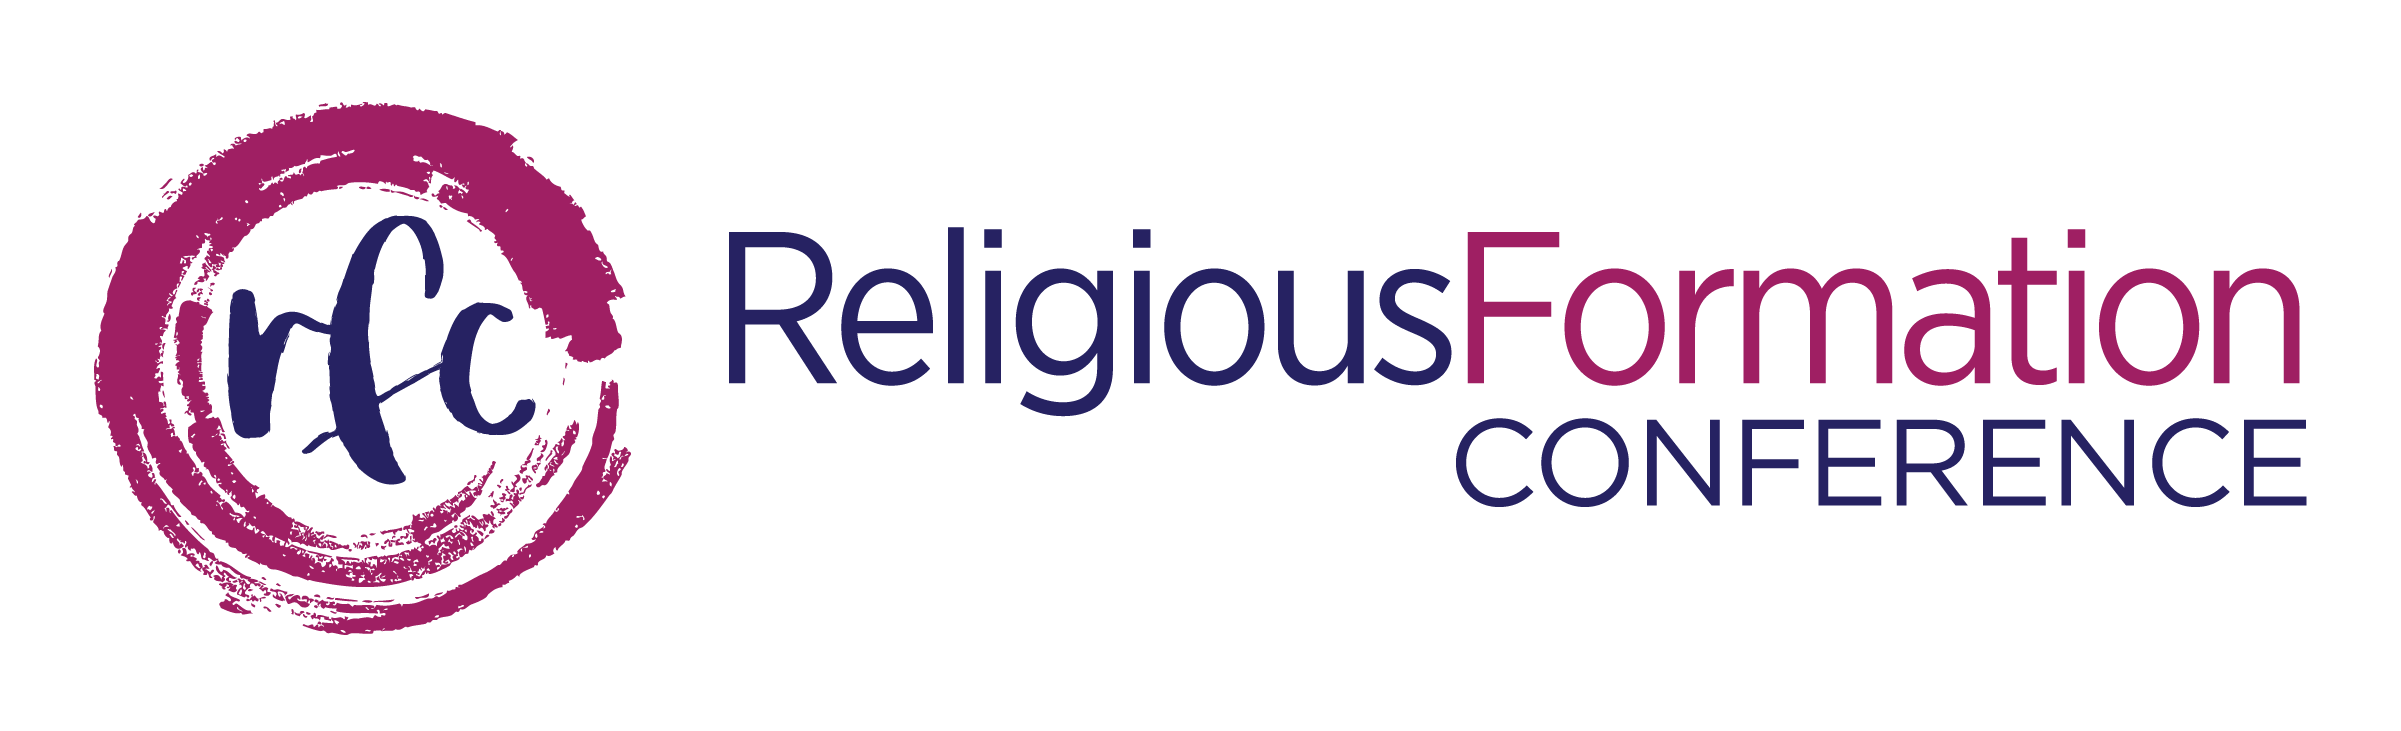 Religious Formation Conference Logo rfc inside circle